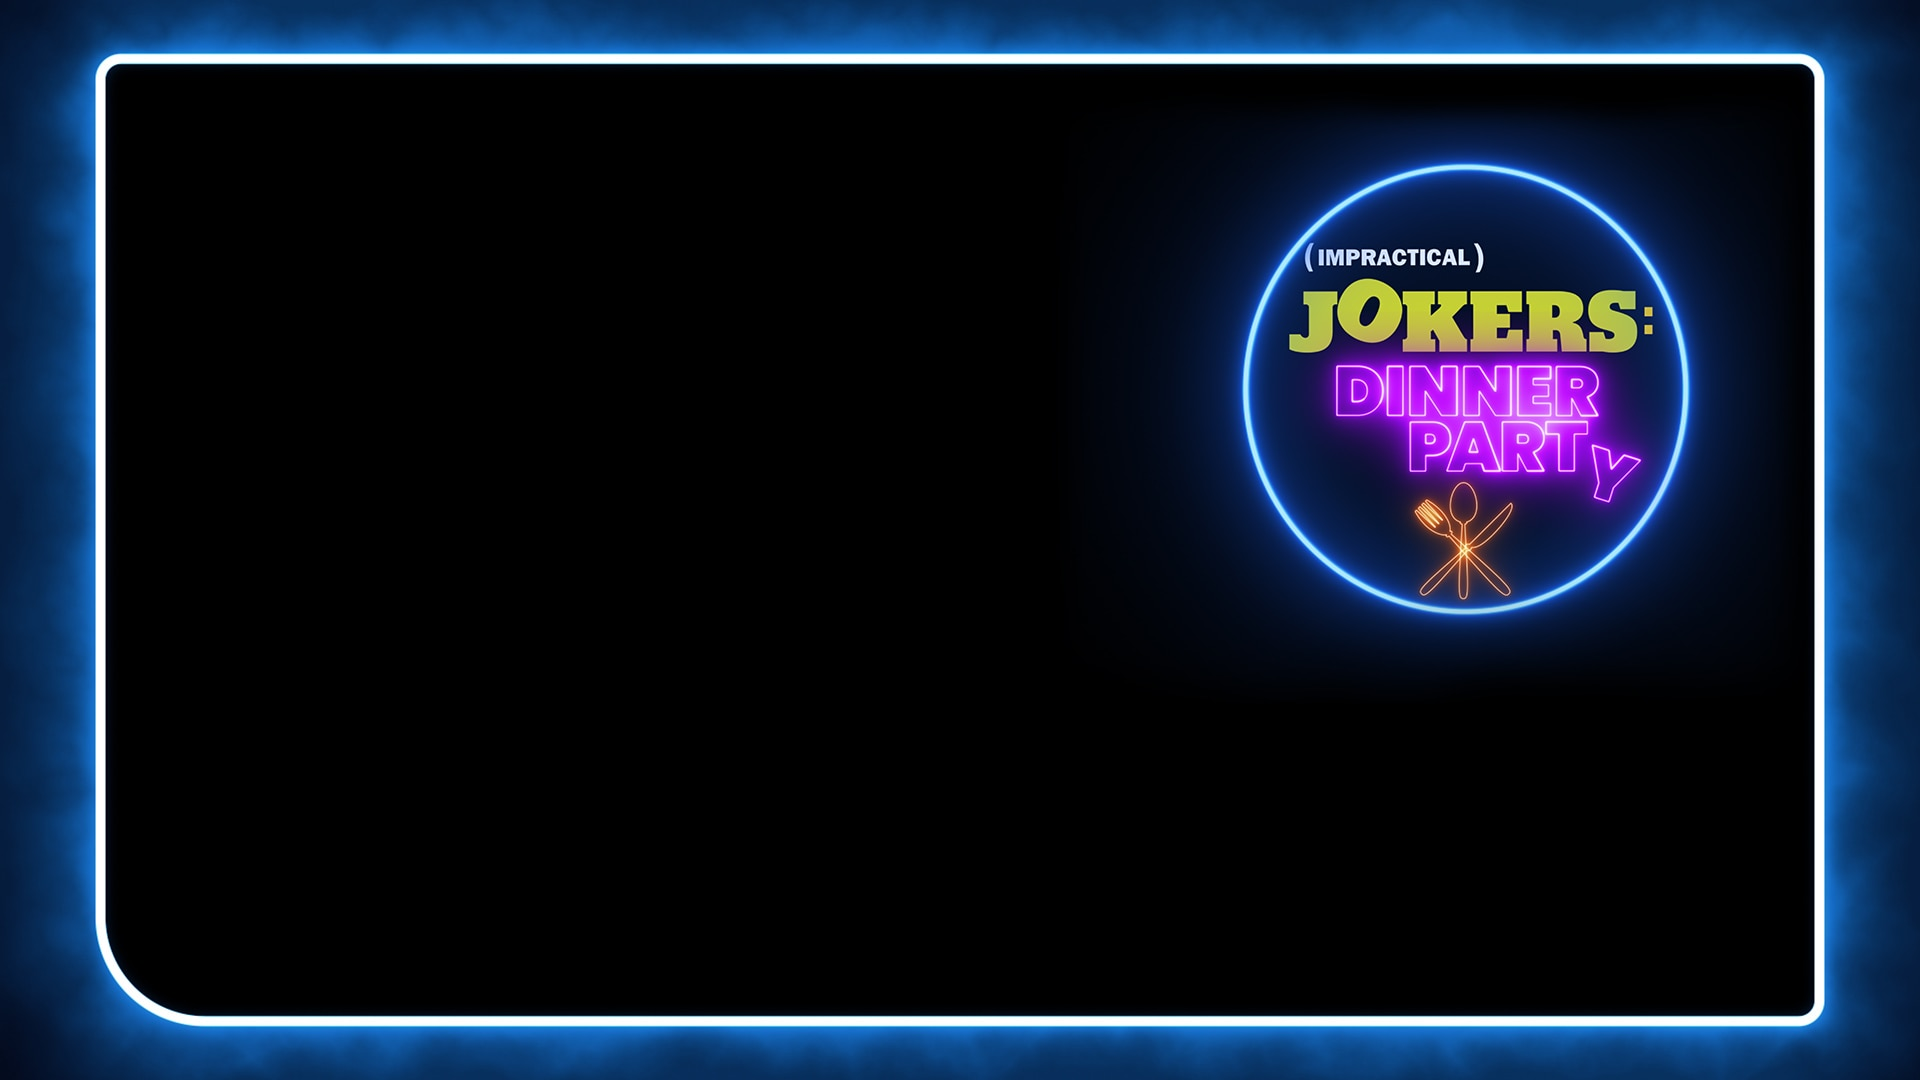 Impractical Jokers: Dinner Party luminescent logo over black background with blue border.